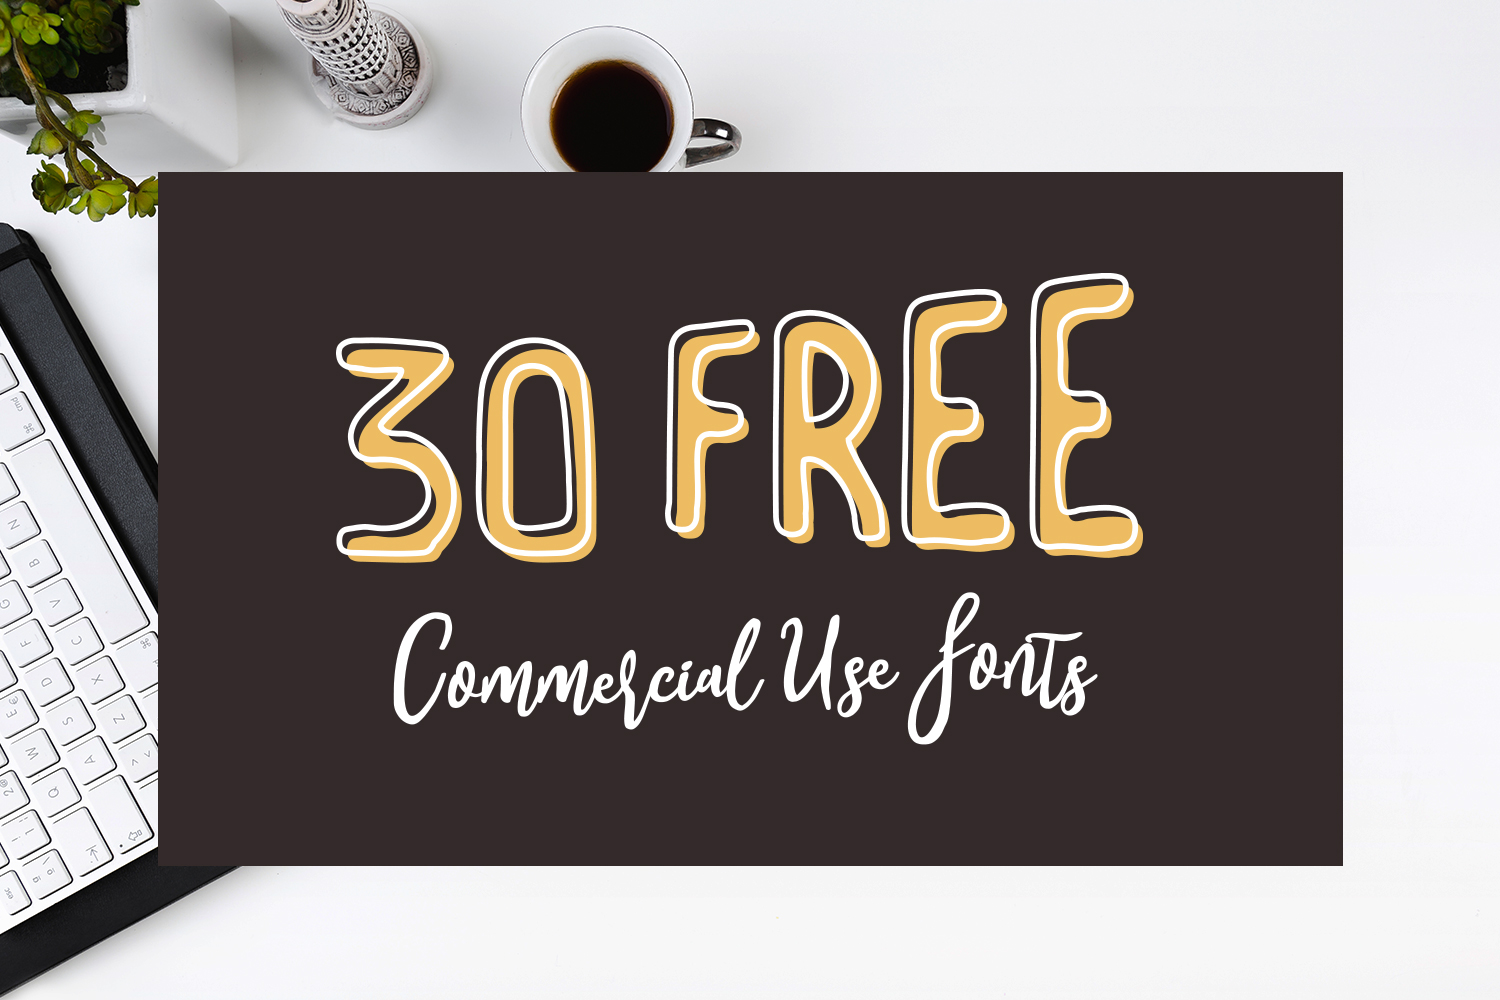 30 FREE Commercial Use Fonts